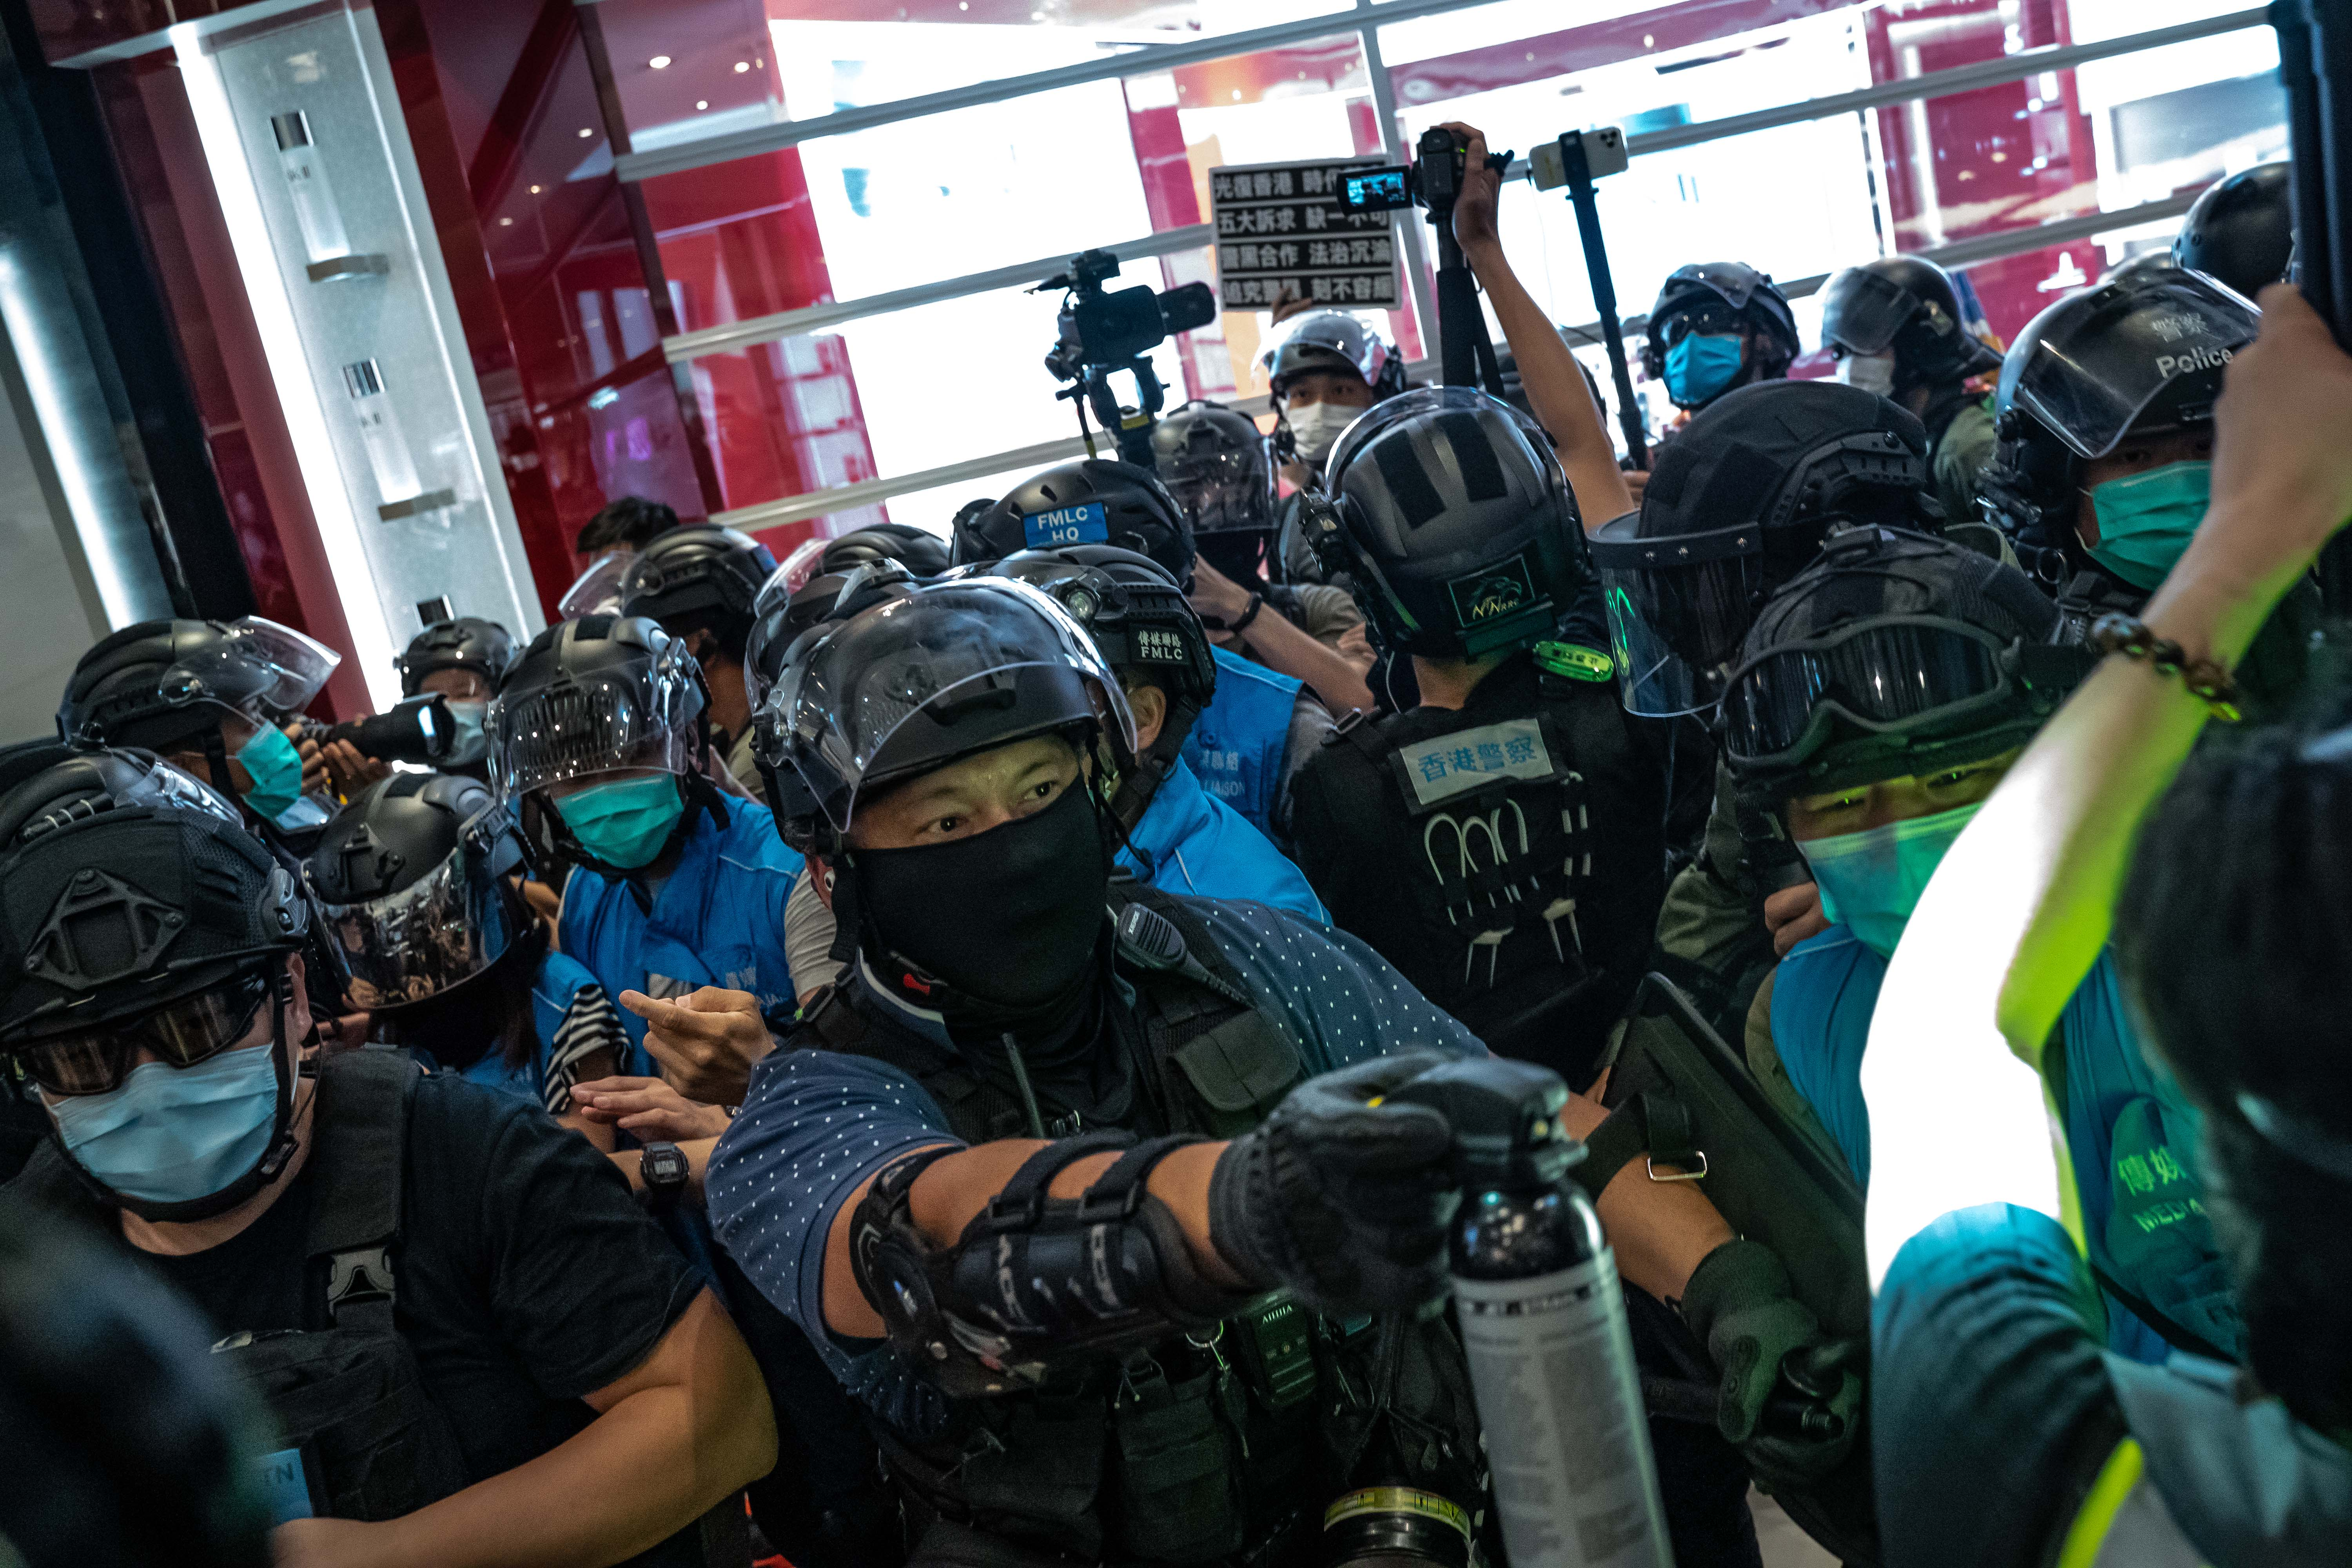 HONG KONG, CHINA - JULY 21: A protester holds up a placard as riot police surround him inside a shopping mall during a rally on July 21, 2020 in Hong Kong, China. (Photo by Anthony Kwan/Getty Images)